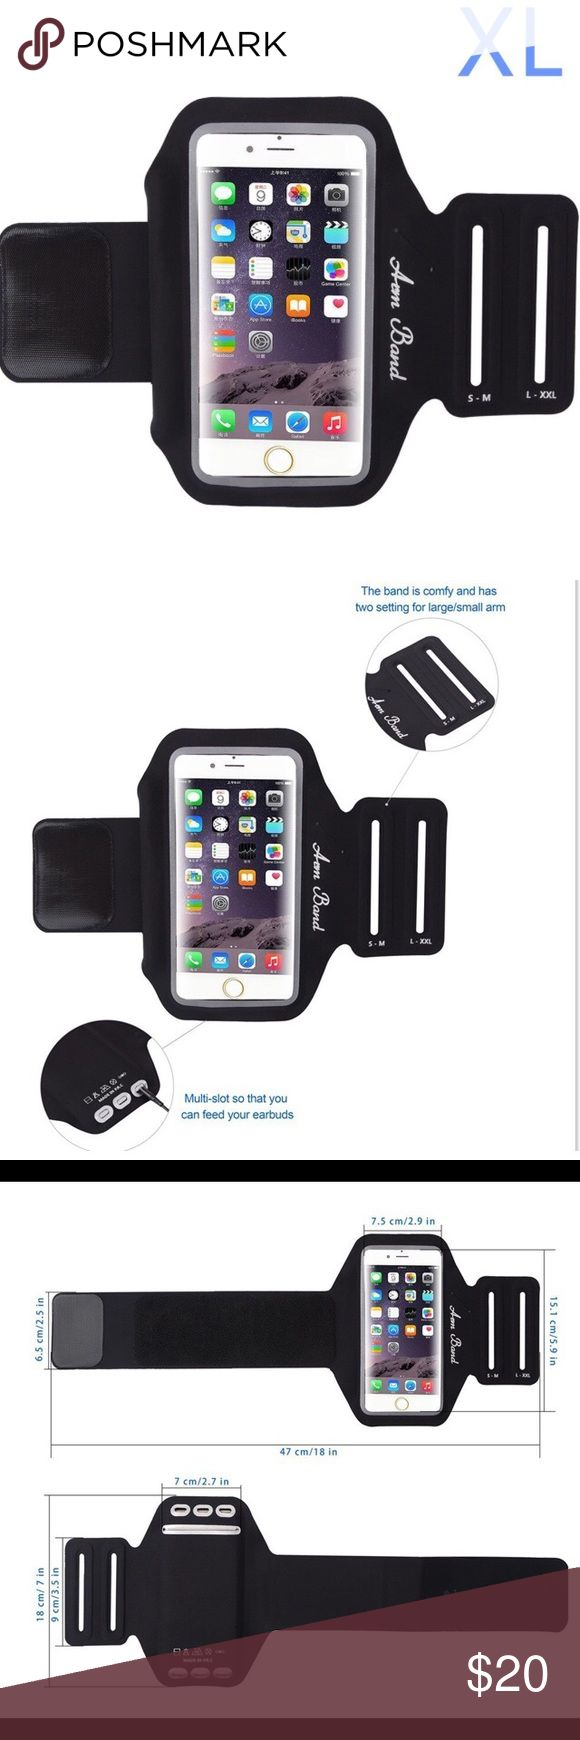 XL Running Armband for Cell Phone Water Resistant Running Armband for iPhone Women or Men Workout Sport Fitness Water Resistant Armband Lightweight for iPhone 8, X, 7 Plus,6 Plus,6s Plus. and Samsung Galaxy S7 Edge ,S8 (XL-Black)  New in package   Same day shipping if I order by 4 PM weekdays Smoke free and pet free home Accessories Phone Cases